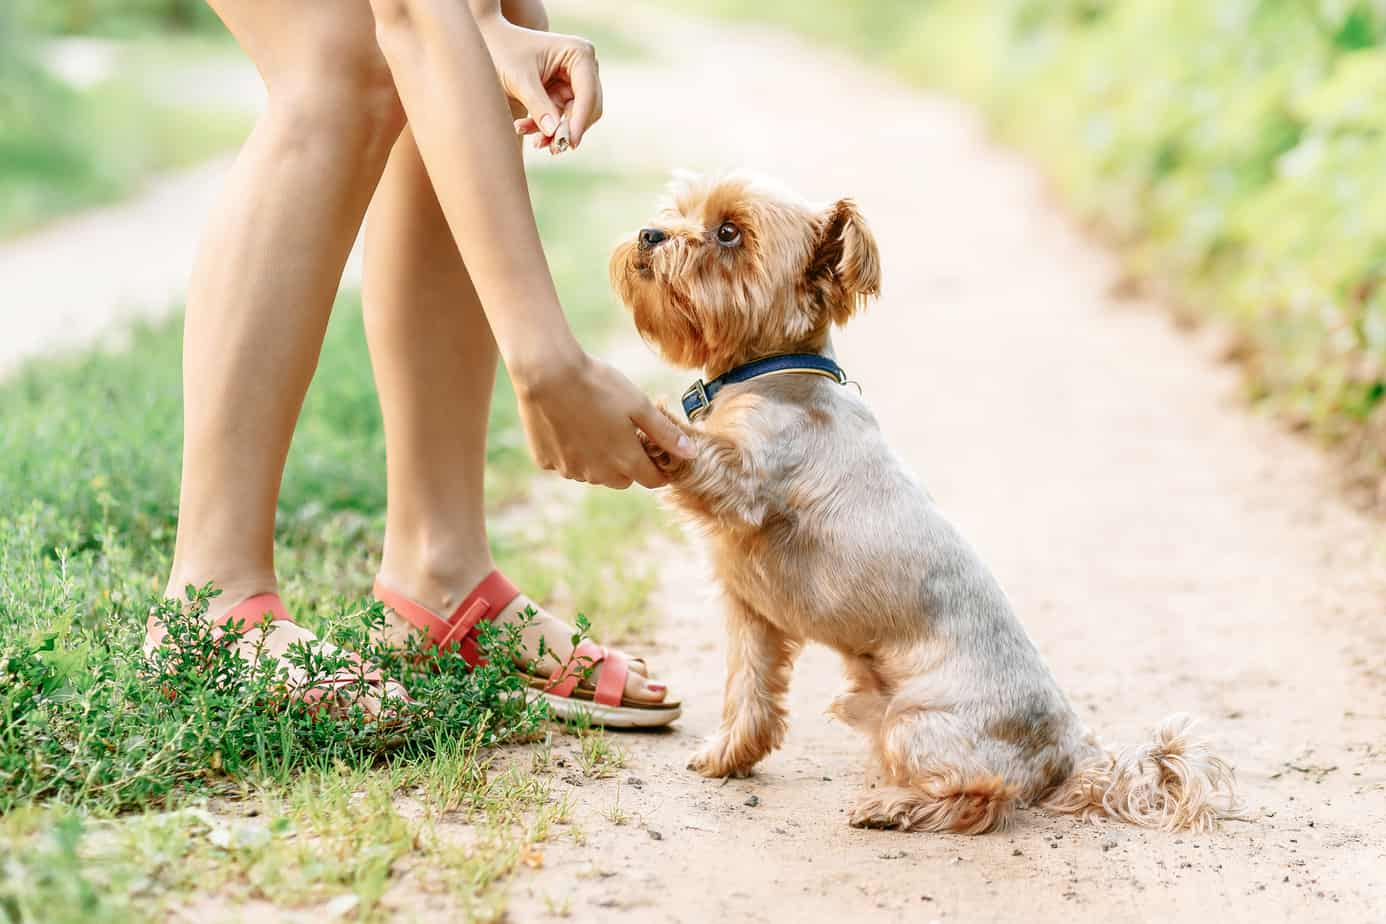 How to Teach Your Dog Commands Using Positive Reinforcement